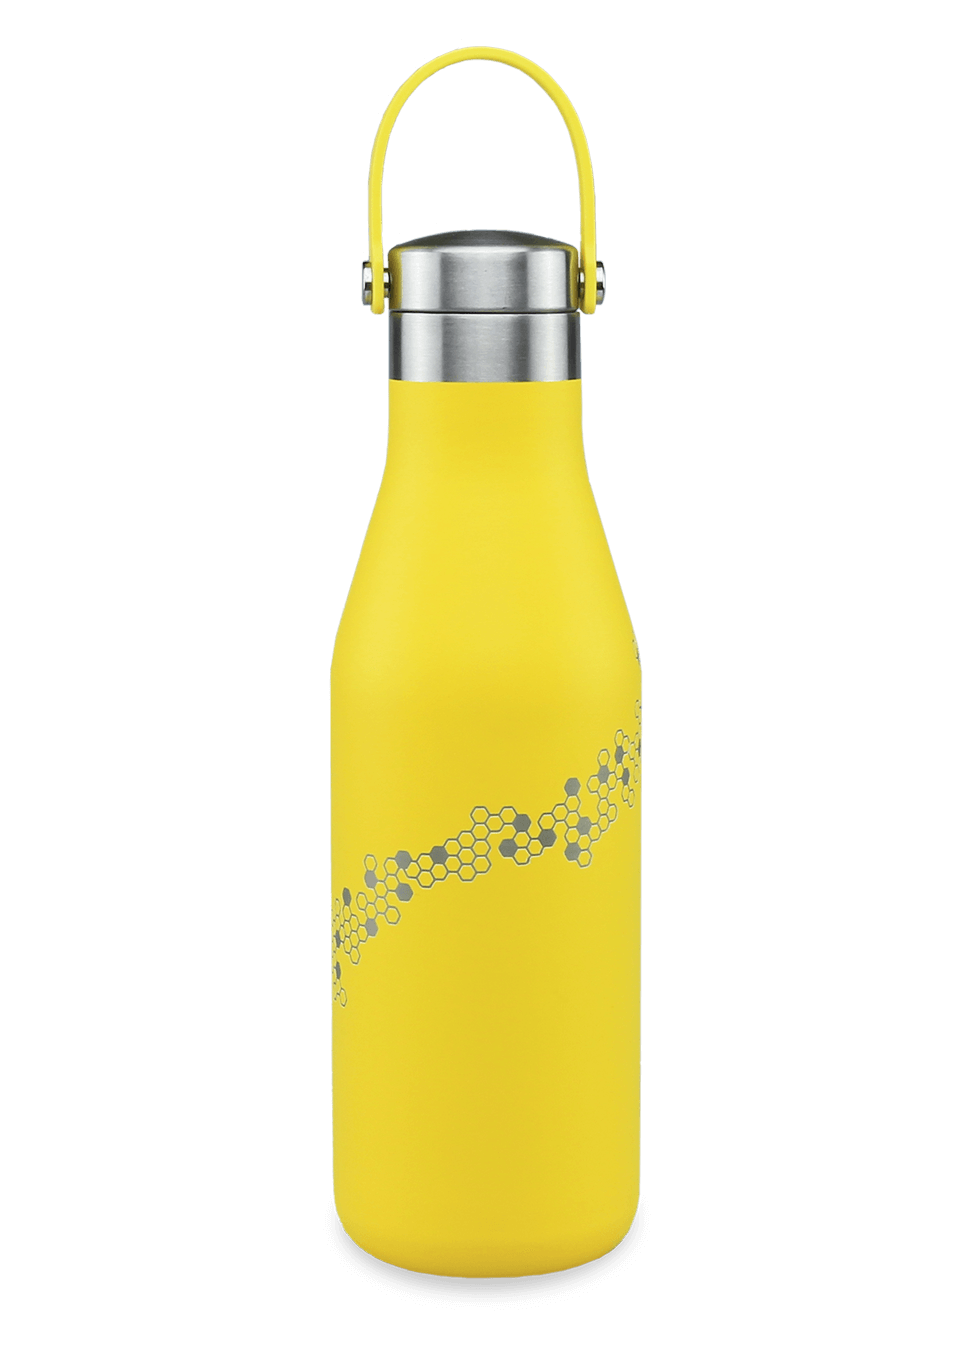 Ohelo branded water bottle 17oz yellow with laser etched honeycomb and bee